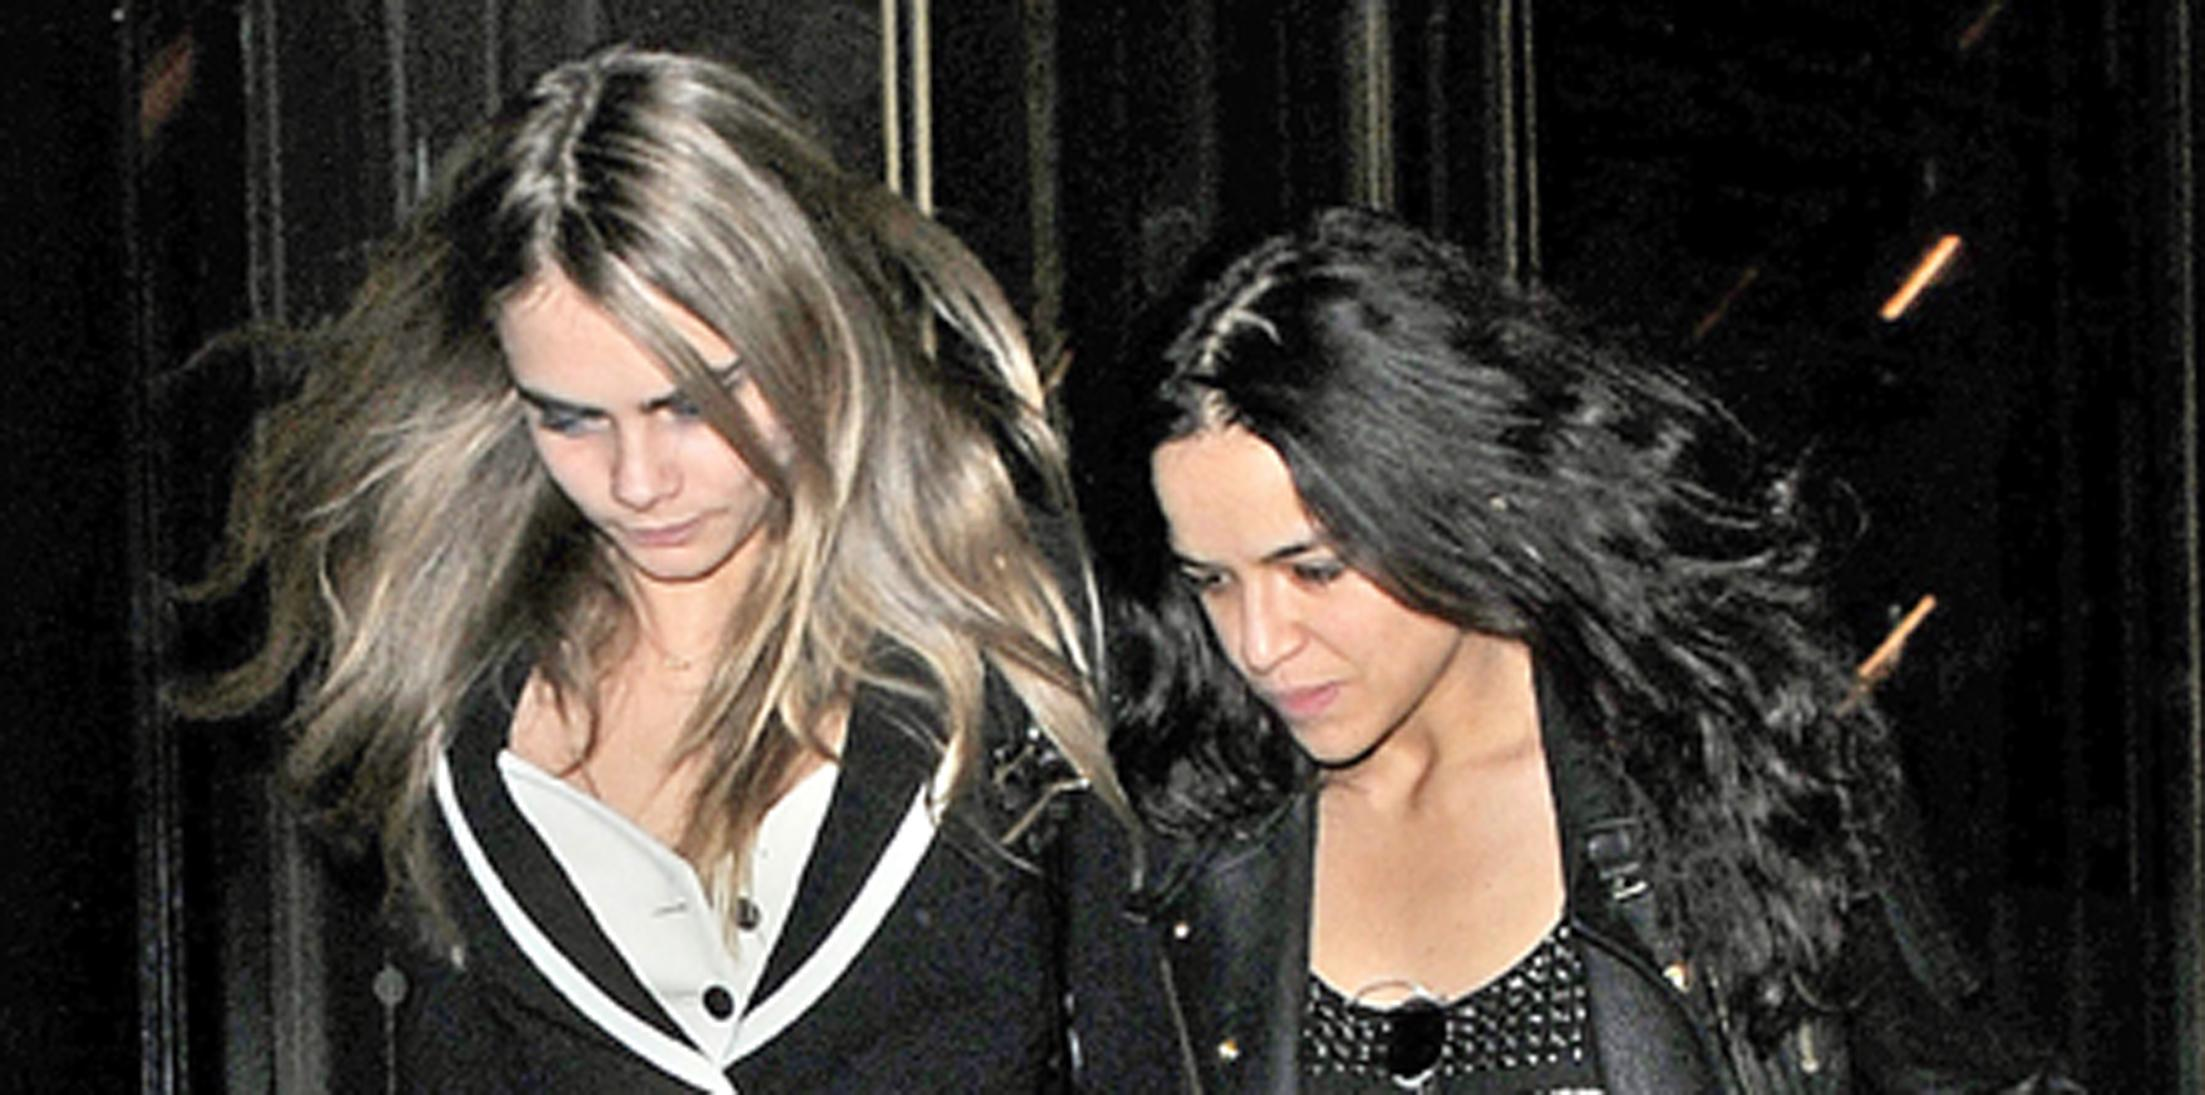 Cara Delevingne and Michelle Rodriguez leaving a restaurant after a date night **USA ONLY**